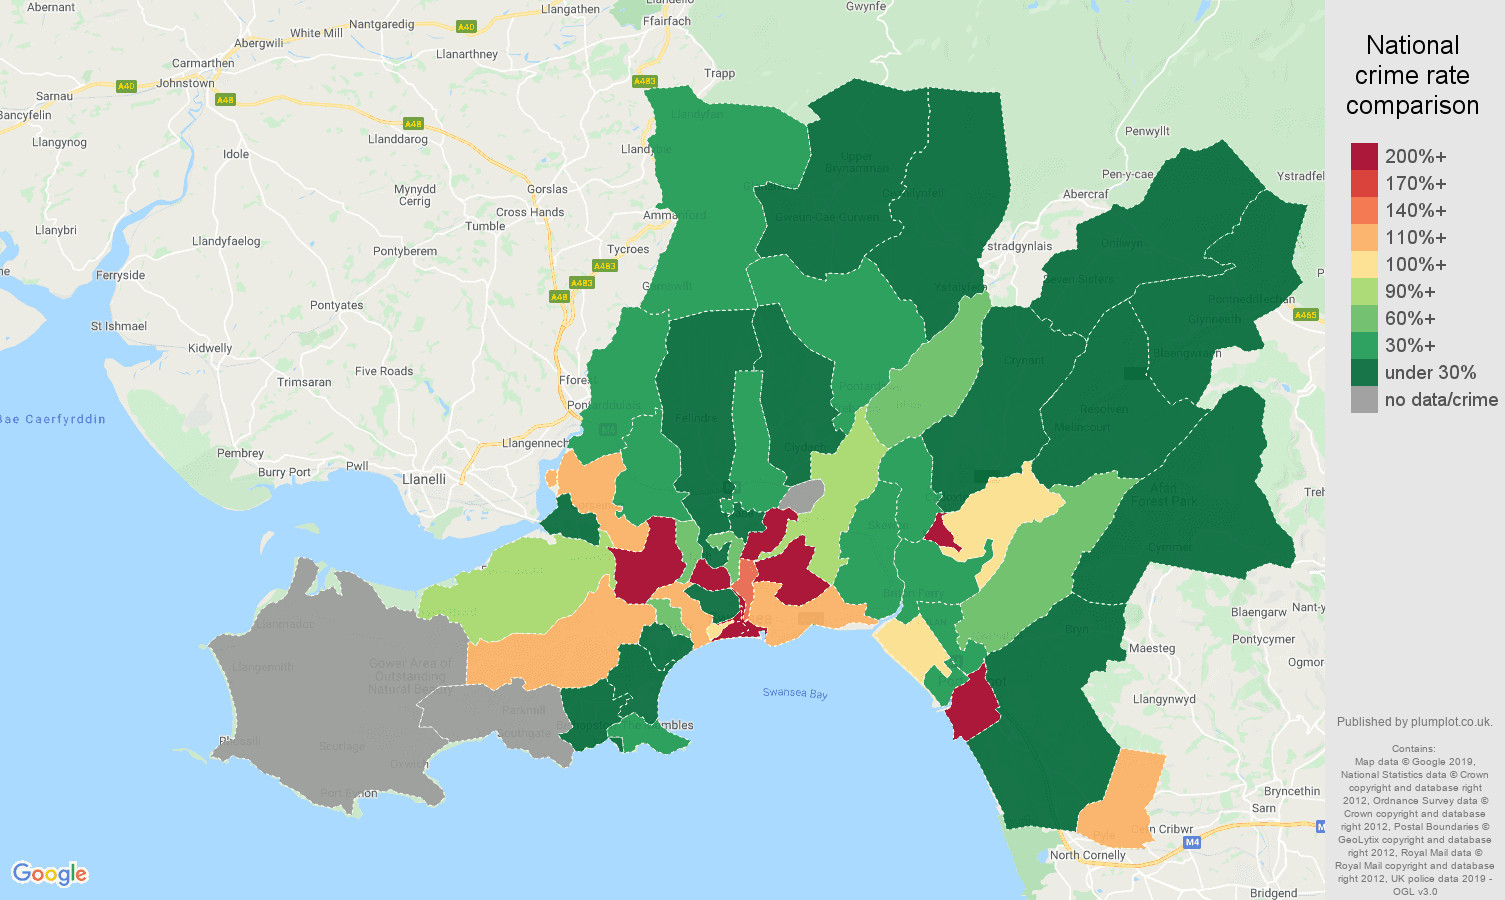 West Glamorgan shoplifting crime rate comparison map